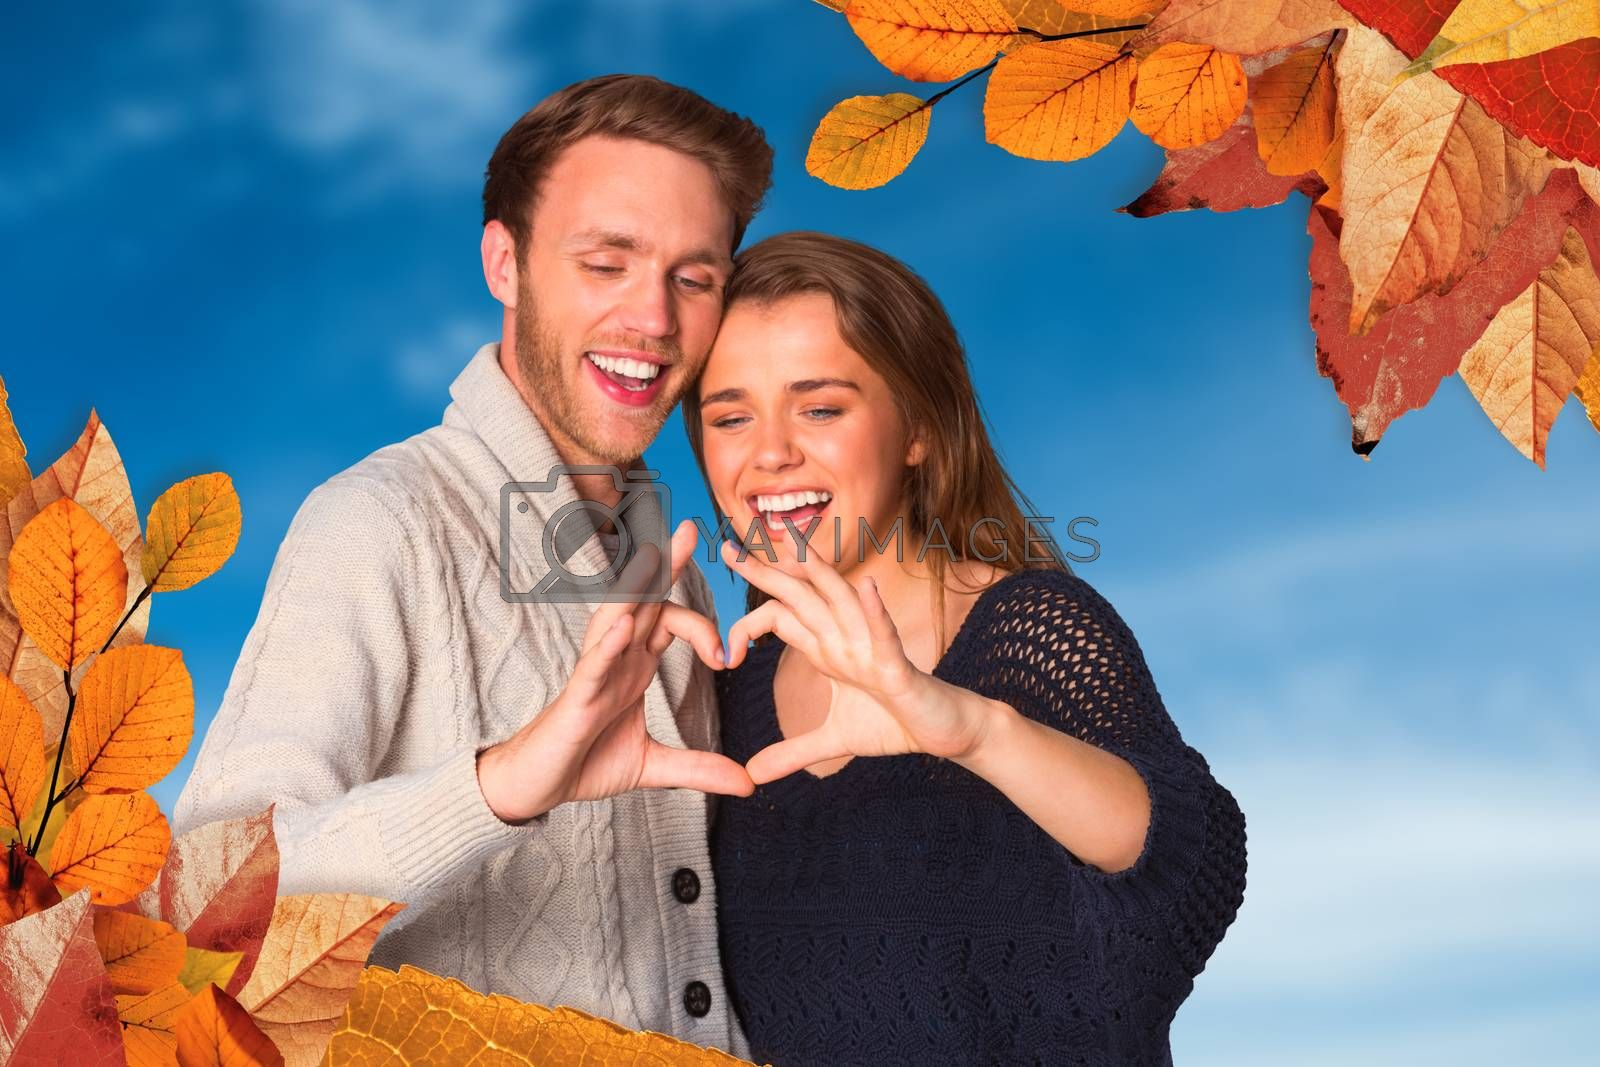 Happy couple forming heart with hands against blue sky